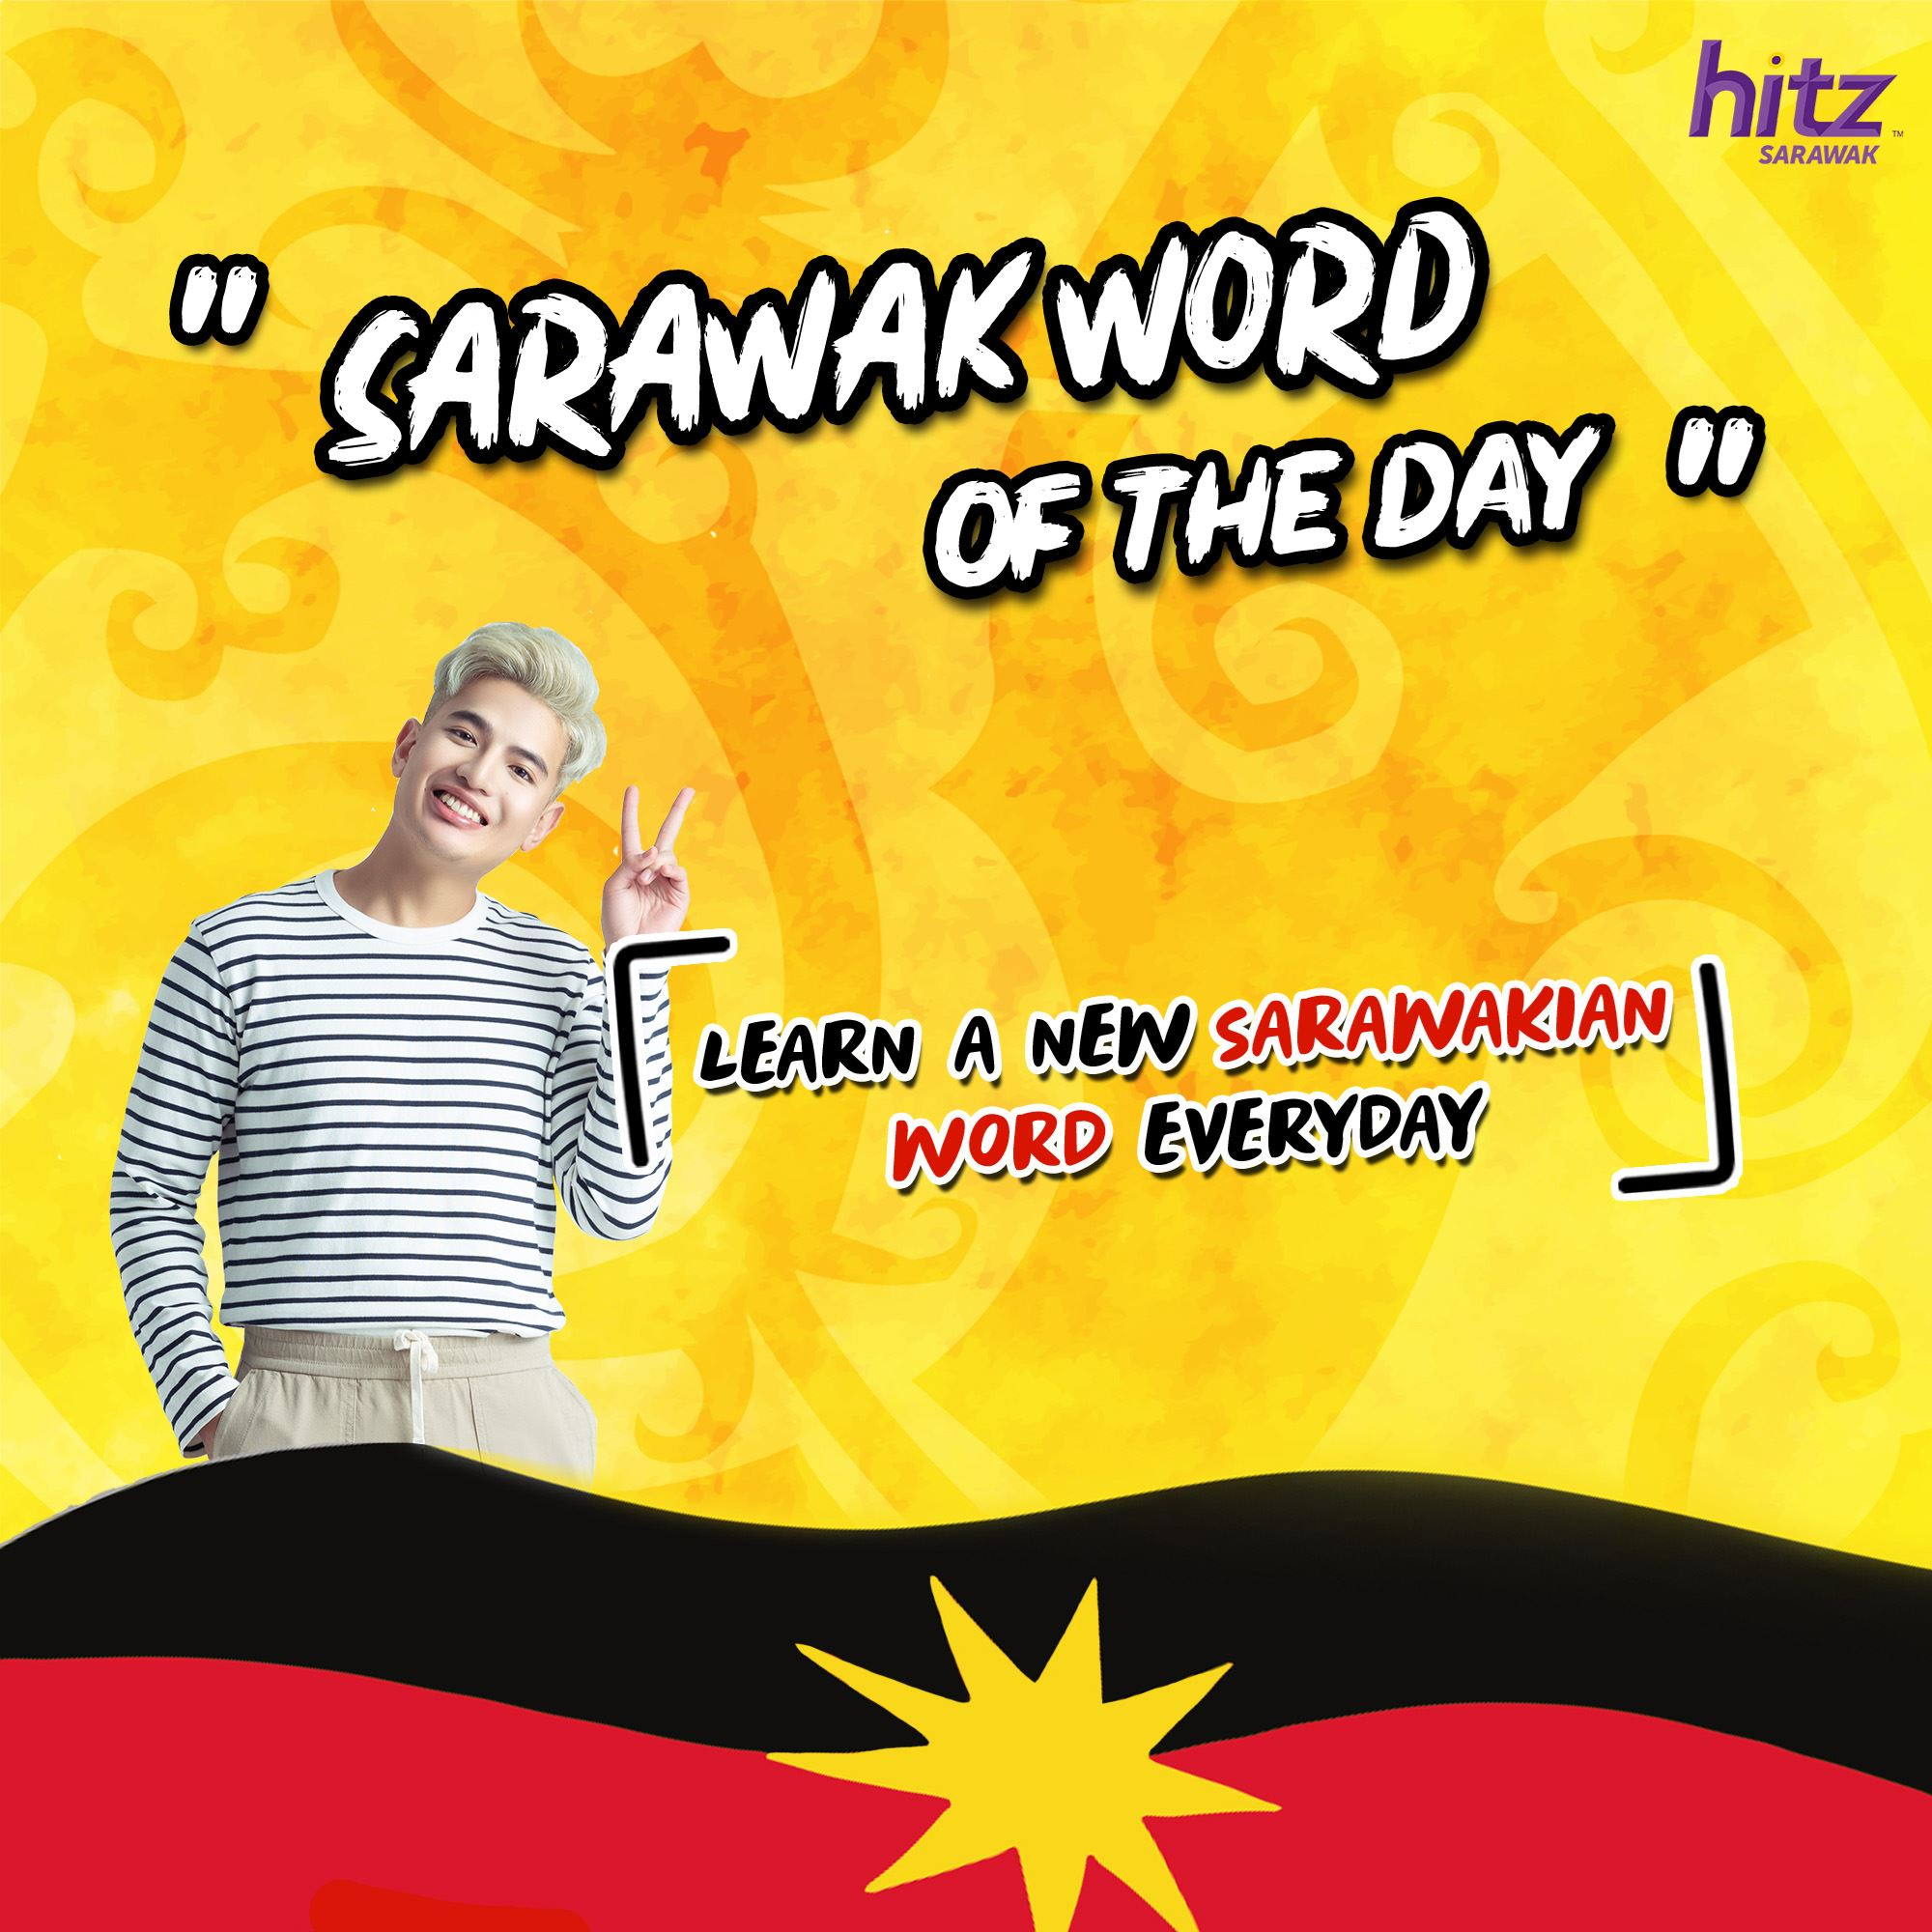 Sarawak Word Of The Day